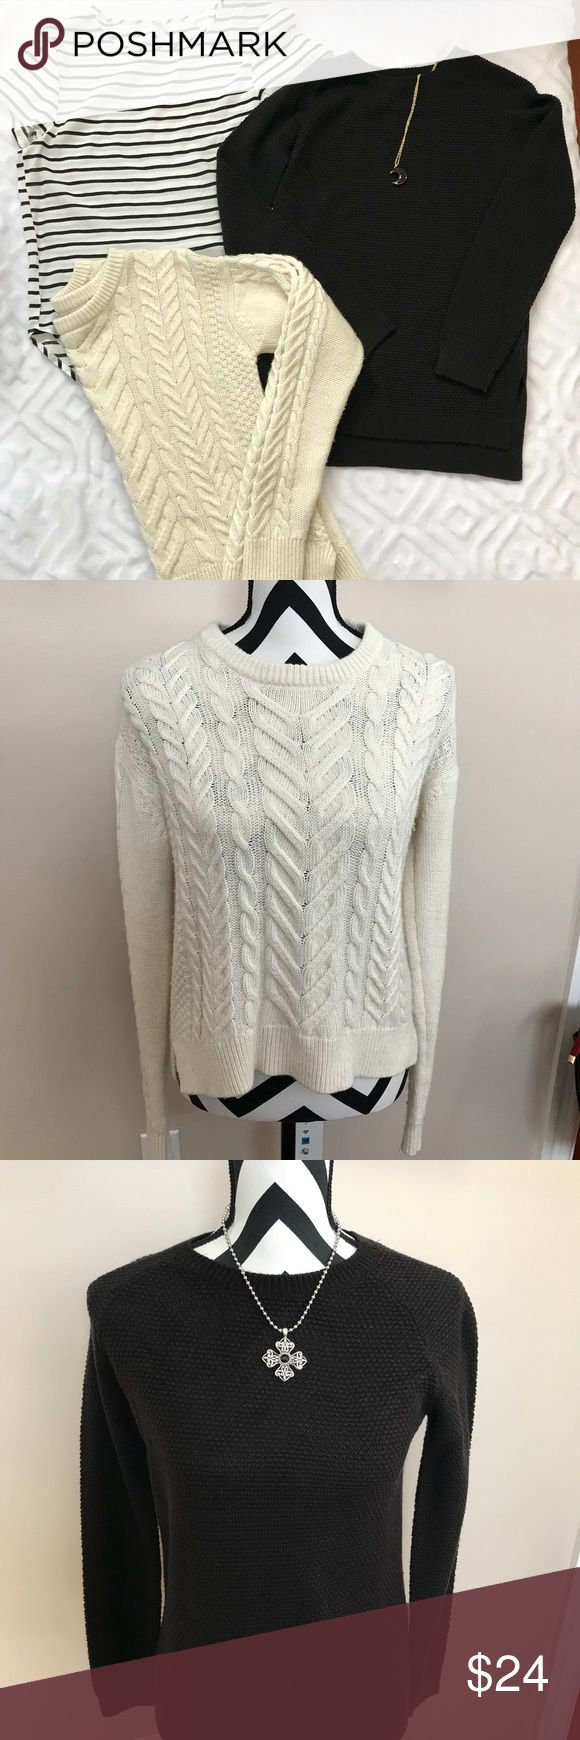 H&M bundle! 🌟🌟🌟 Darling ❤️🌟 H&M bundle 2-sweaters 1-striped Top! Great pre-owned condition!  Black Divided Brand from H&M sweater never worn. Cream cable knit.  Both sweaters have hi-lo style!  XS  Happy Poshing! 😊 H&M Sweaters Crew & Scoop Necks